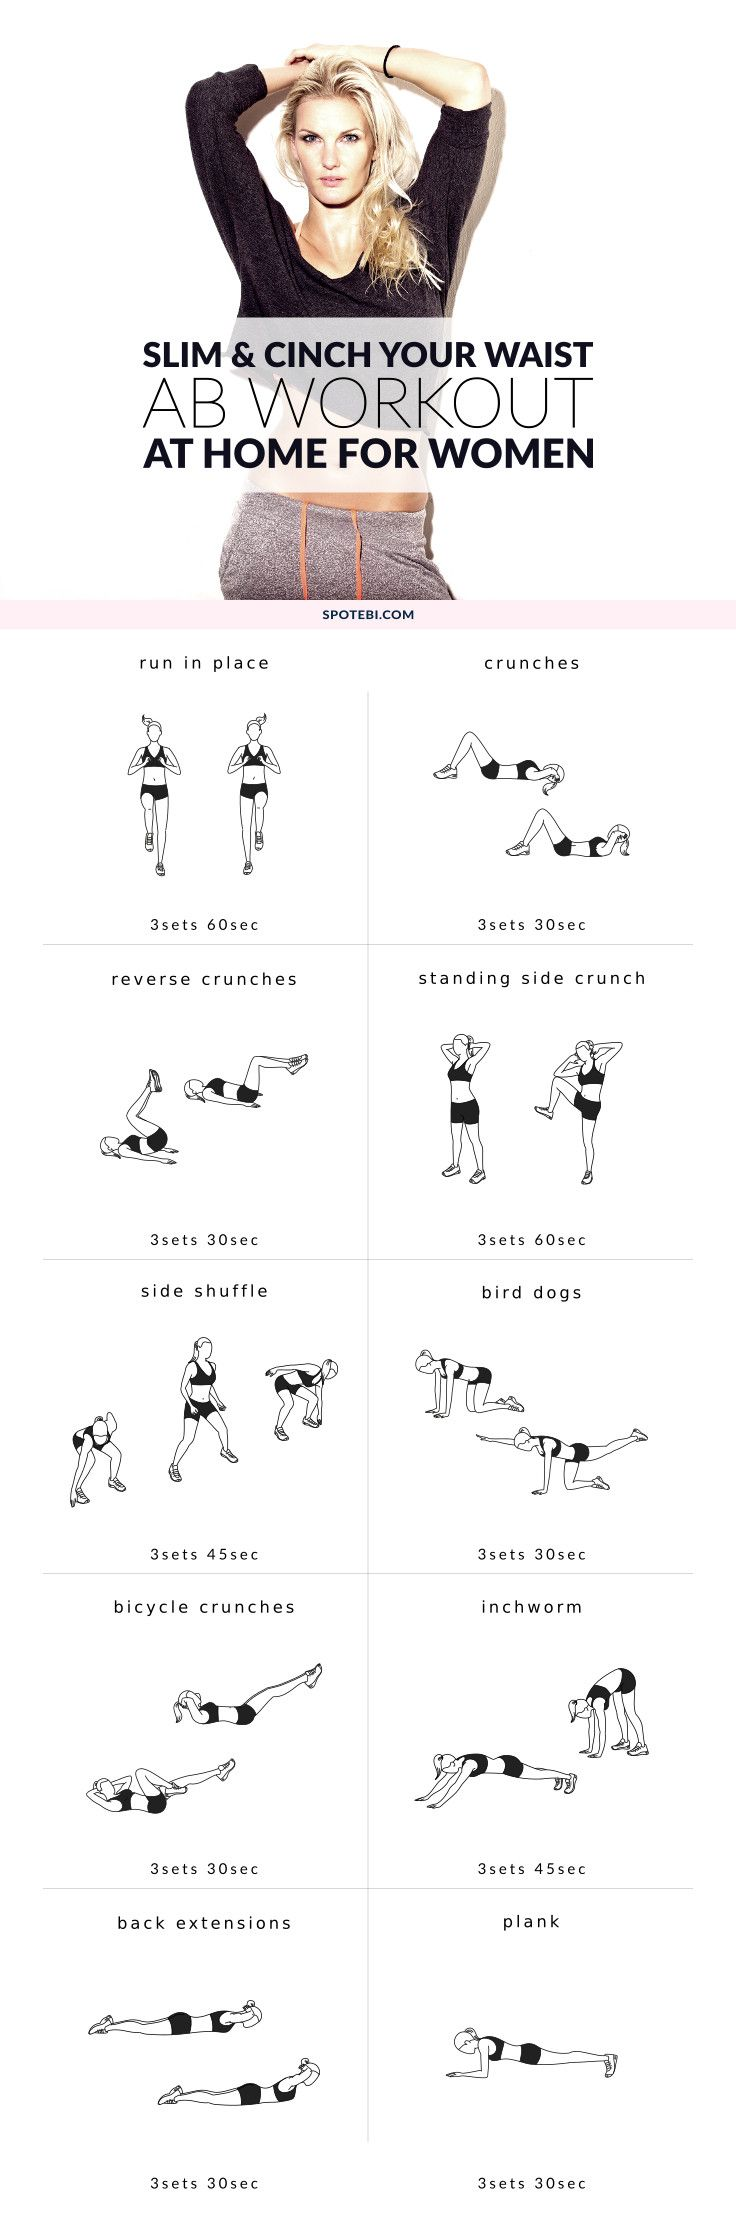 Challenge your midsection with this beginner ab workout for women. A complete core and cardio routine designed to trim and sculpt your abs, obliques and lower back. https://www.spotebi.com/workout-routines/beginner-ab-workout-for-women/